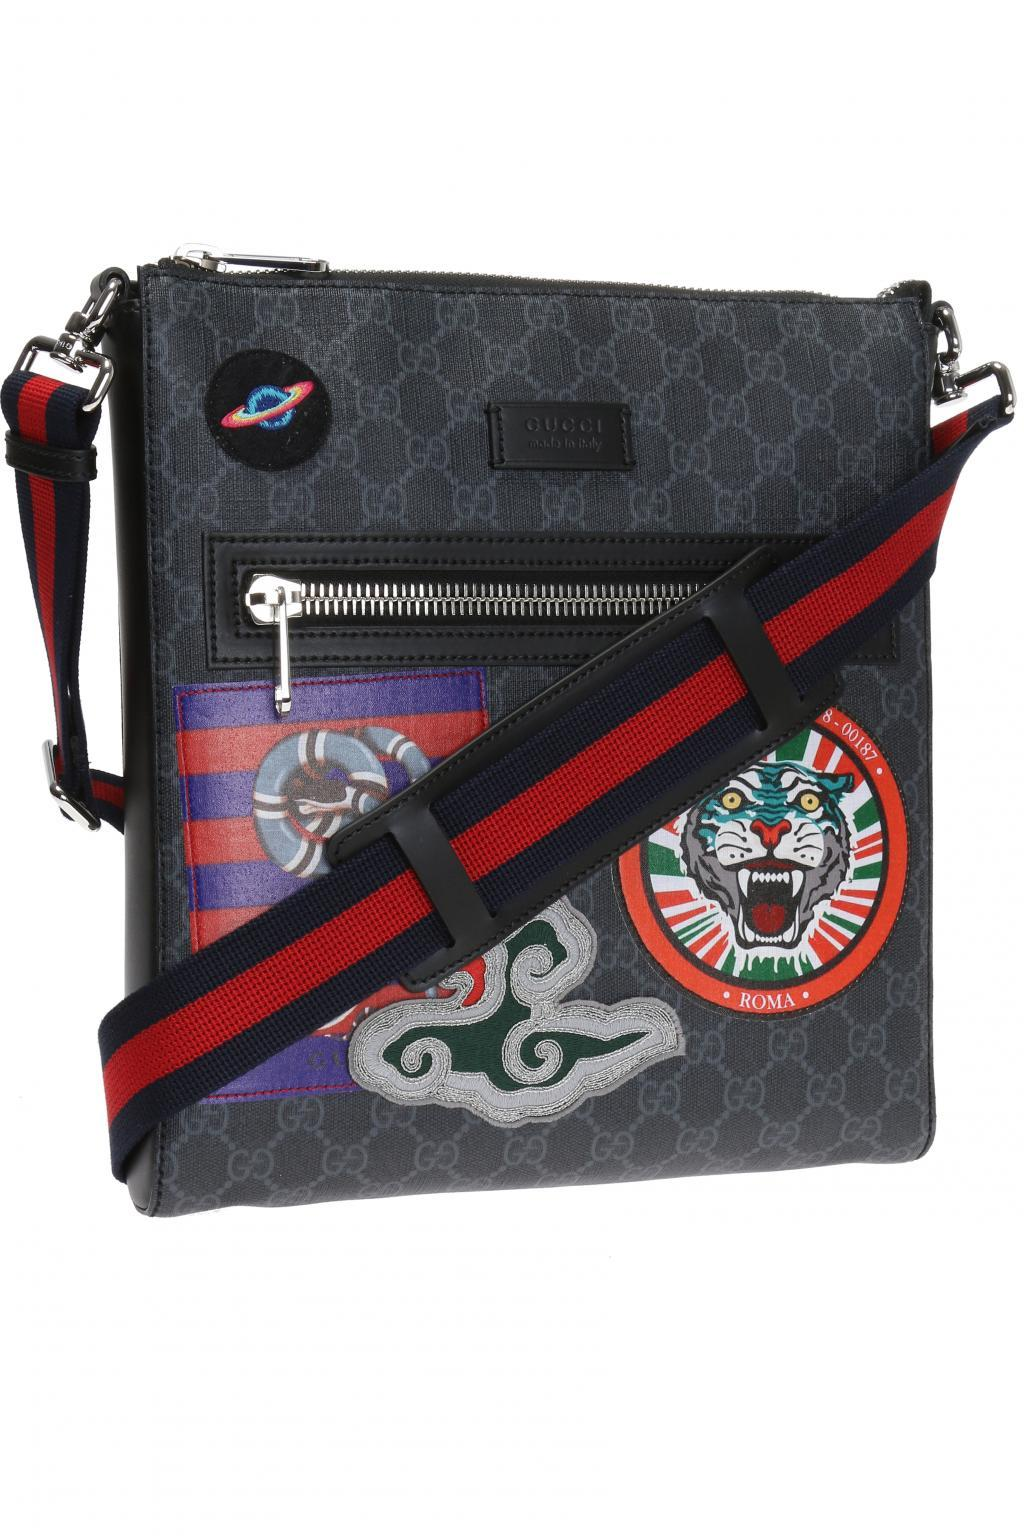 e53ba1ad1e5302 Gucci - Black Patched Shoulder Bag 'night Courrier' for Men - Lyst. View  fullscreen